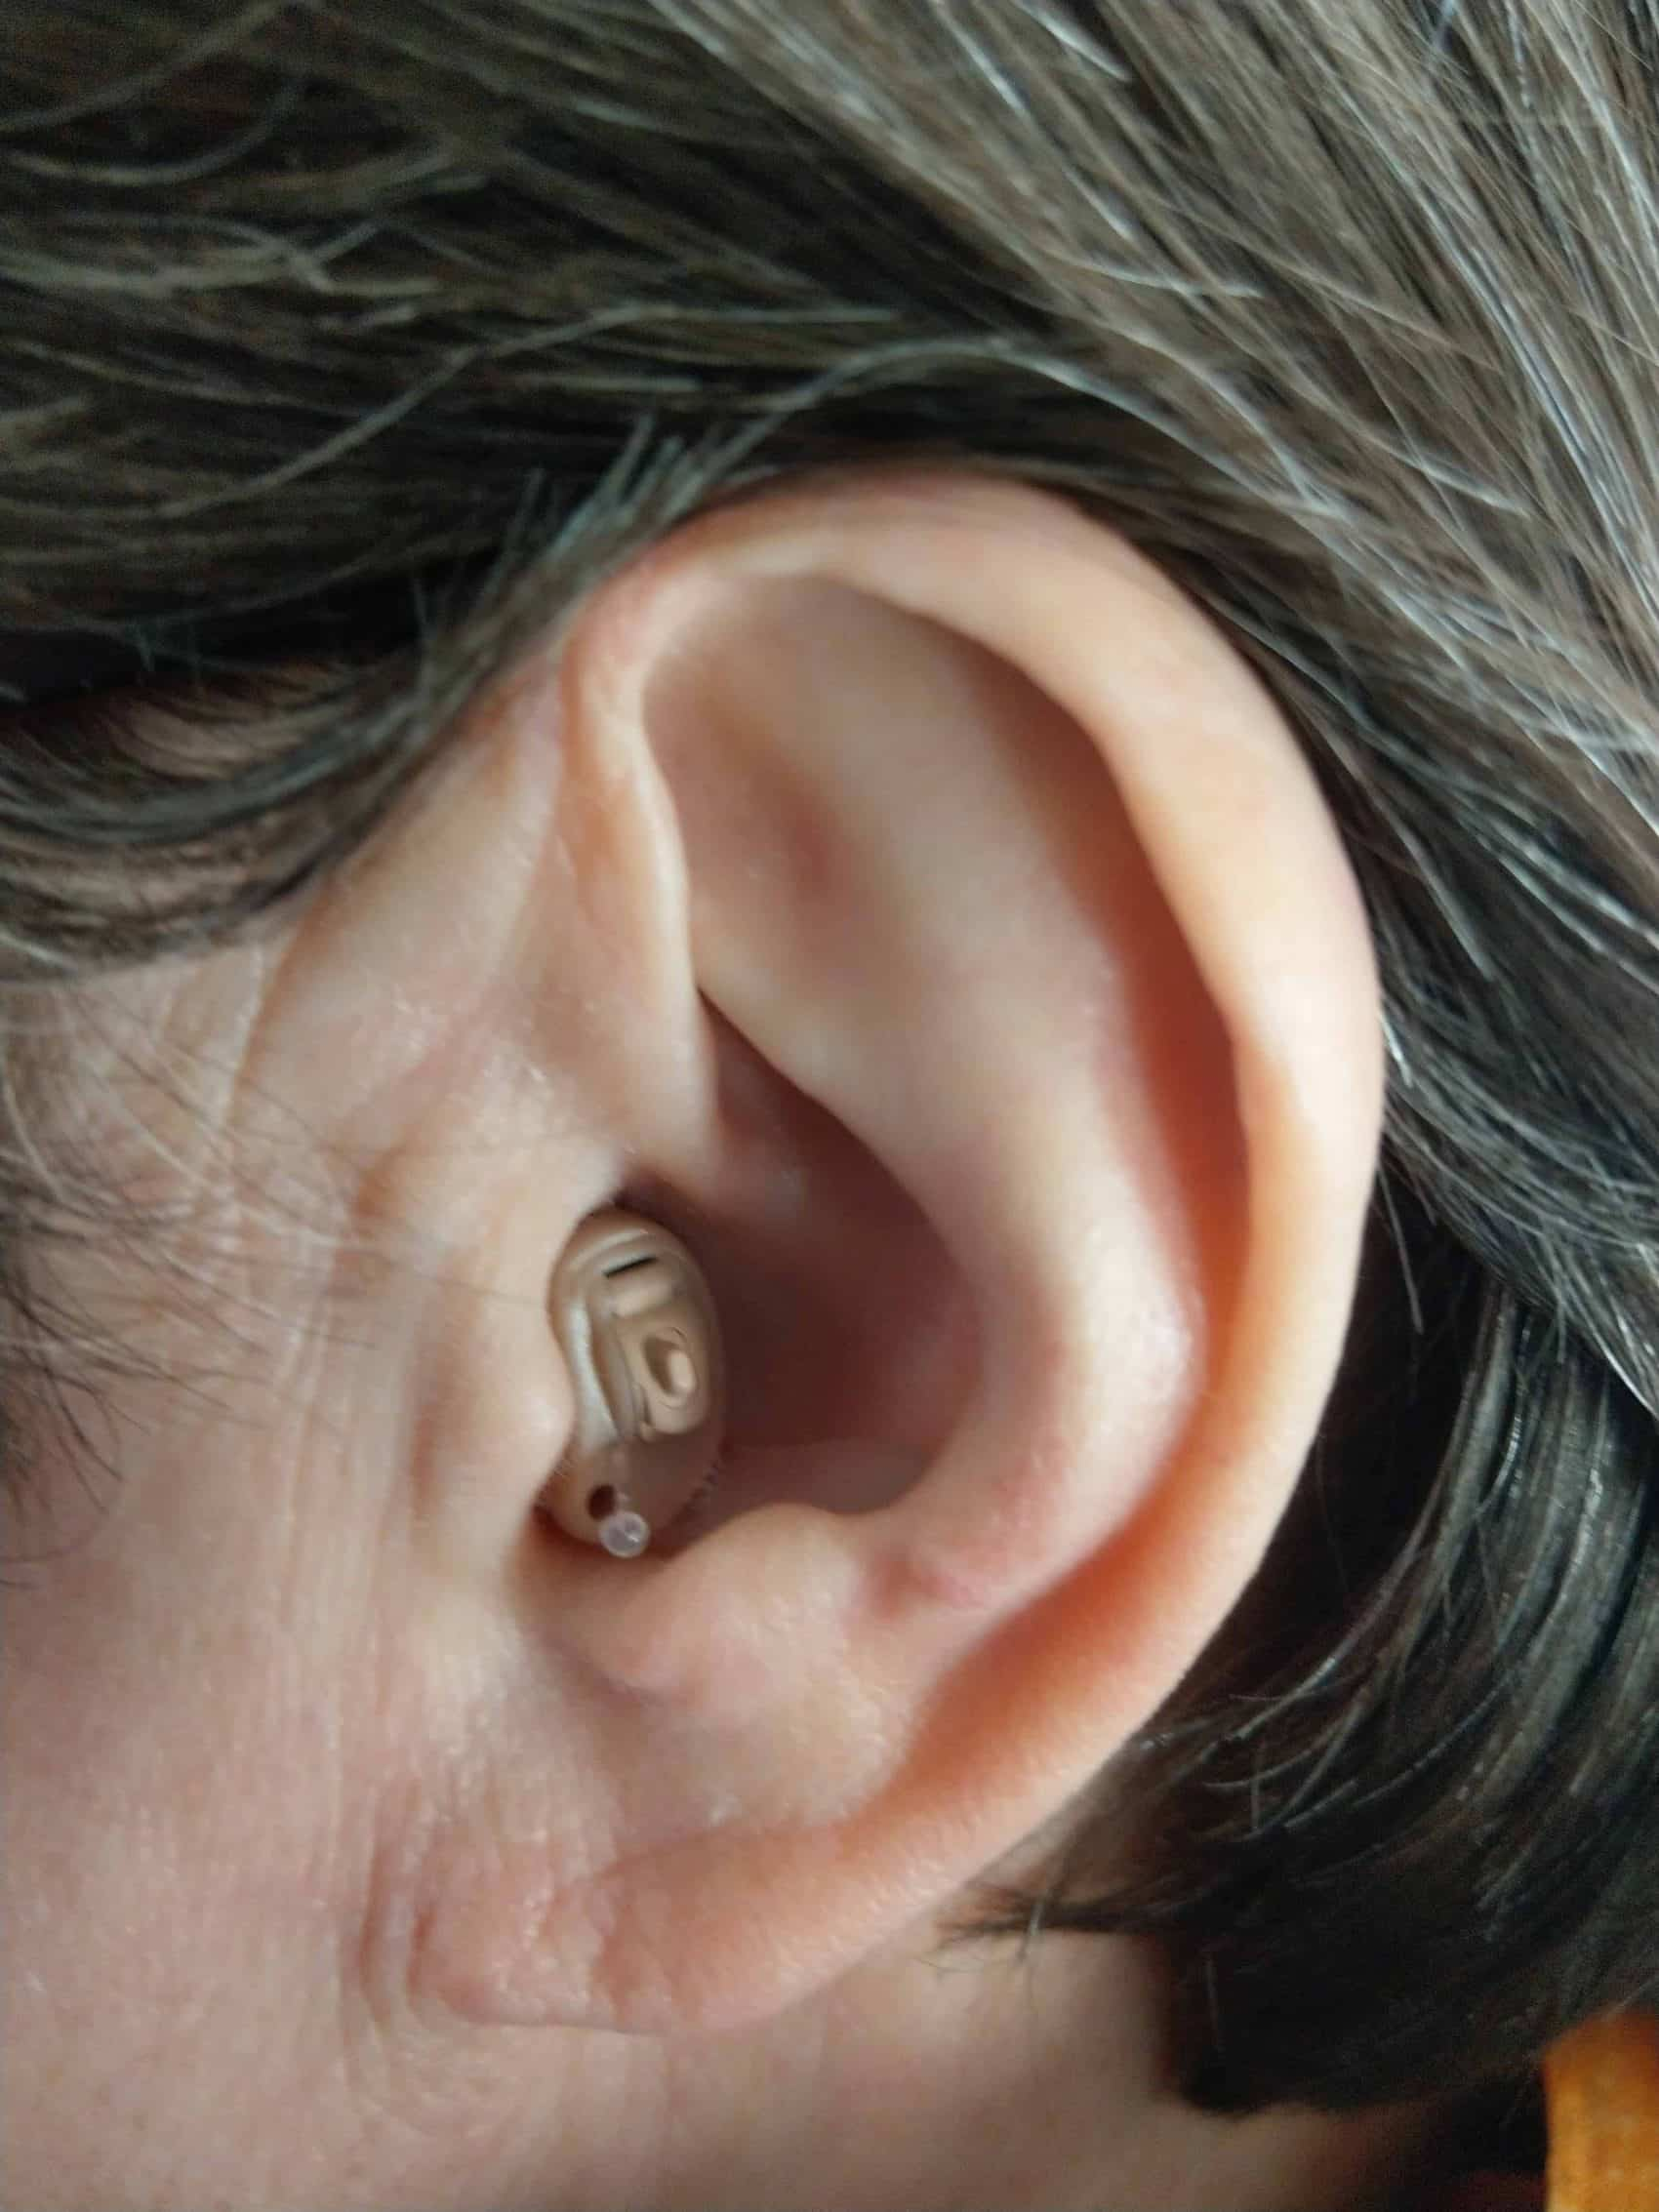 A CIC hearing aid fitted with a CANAL LOCK